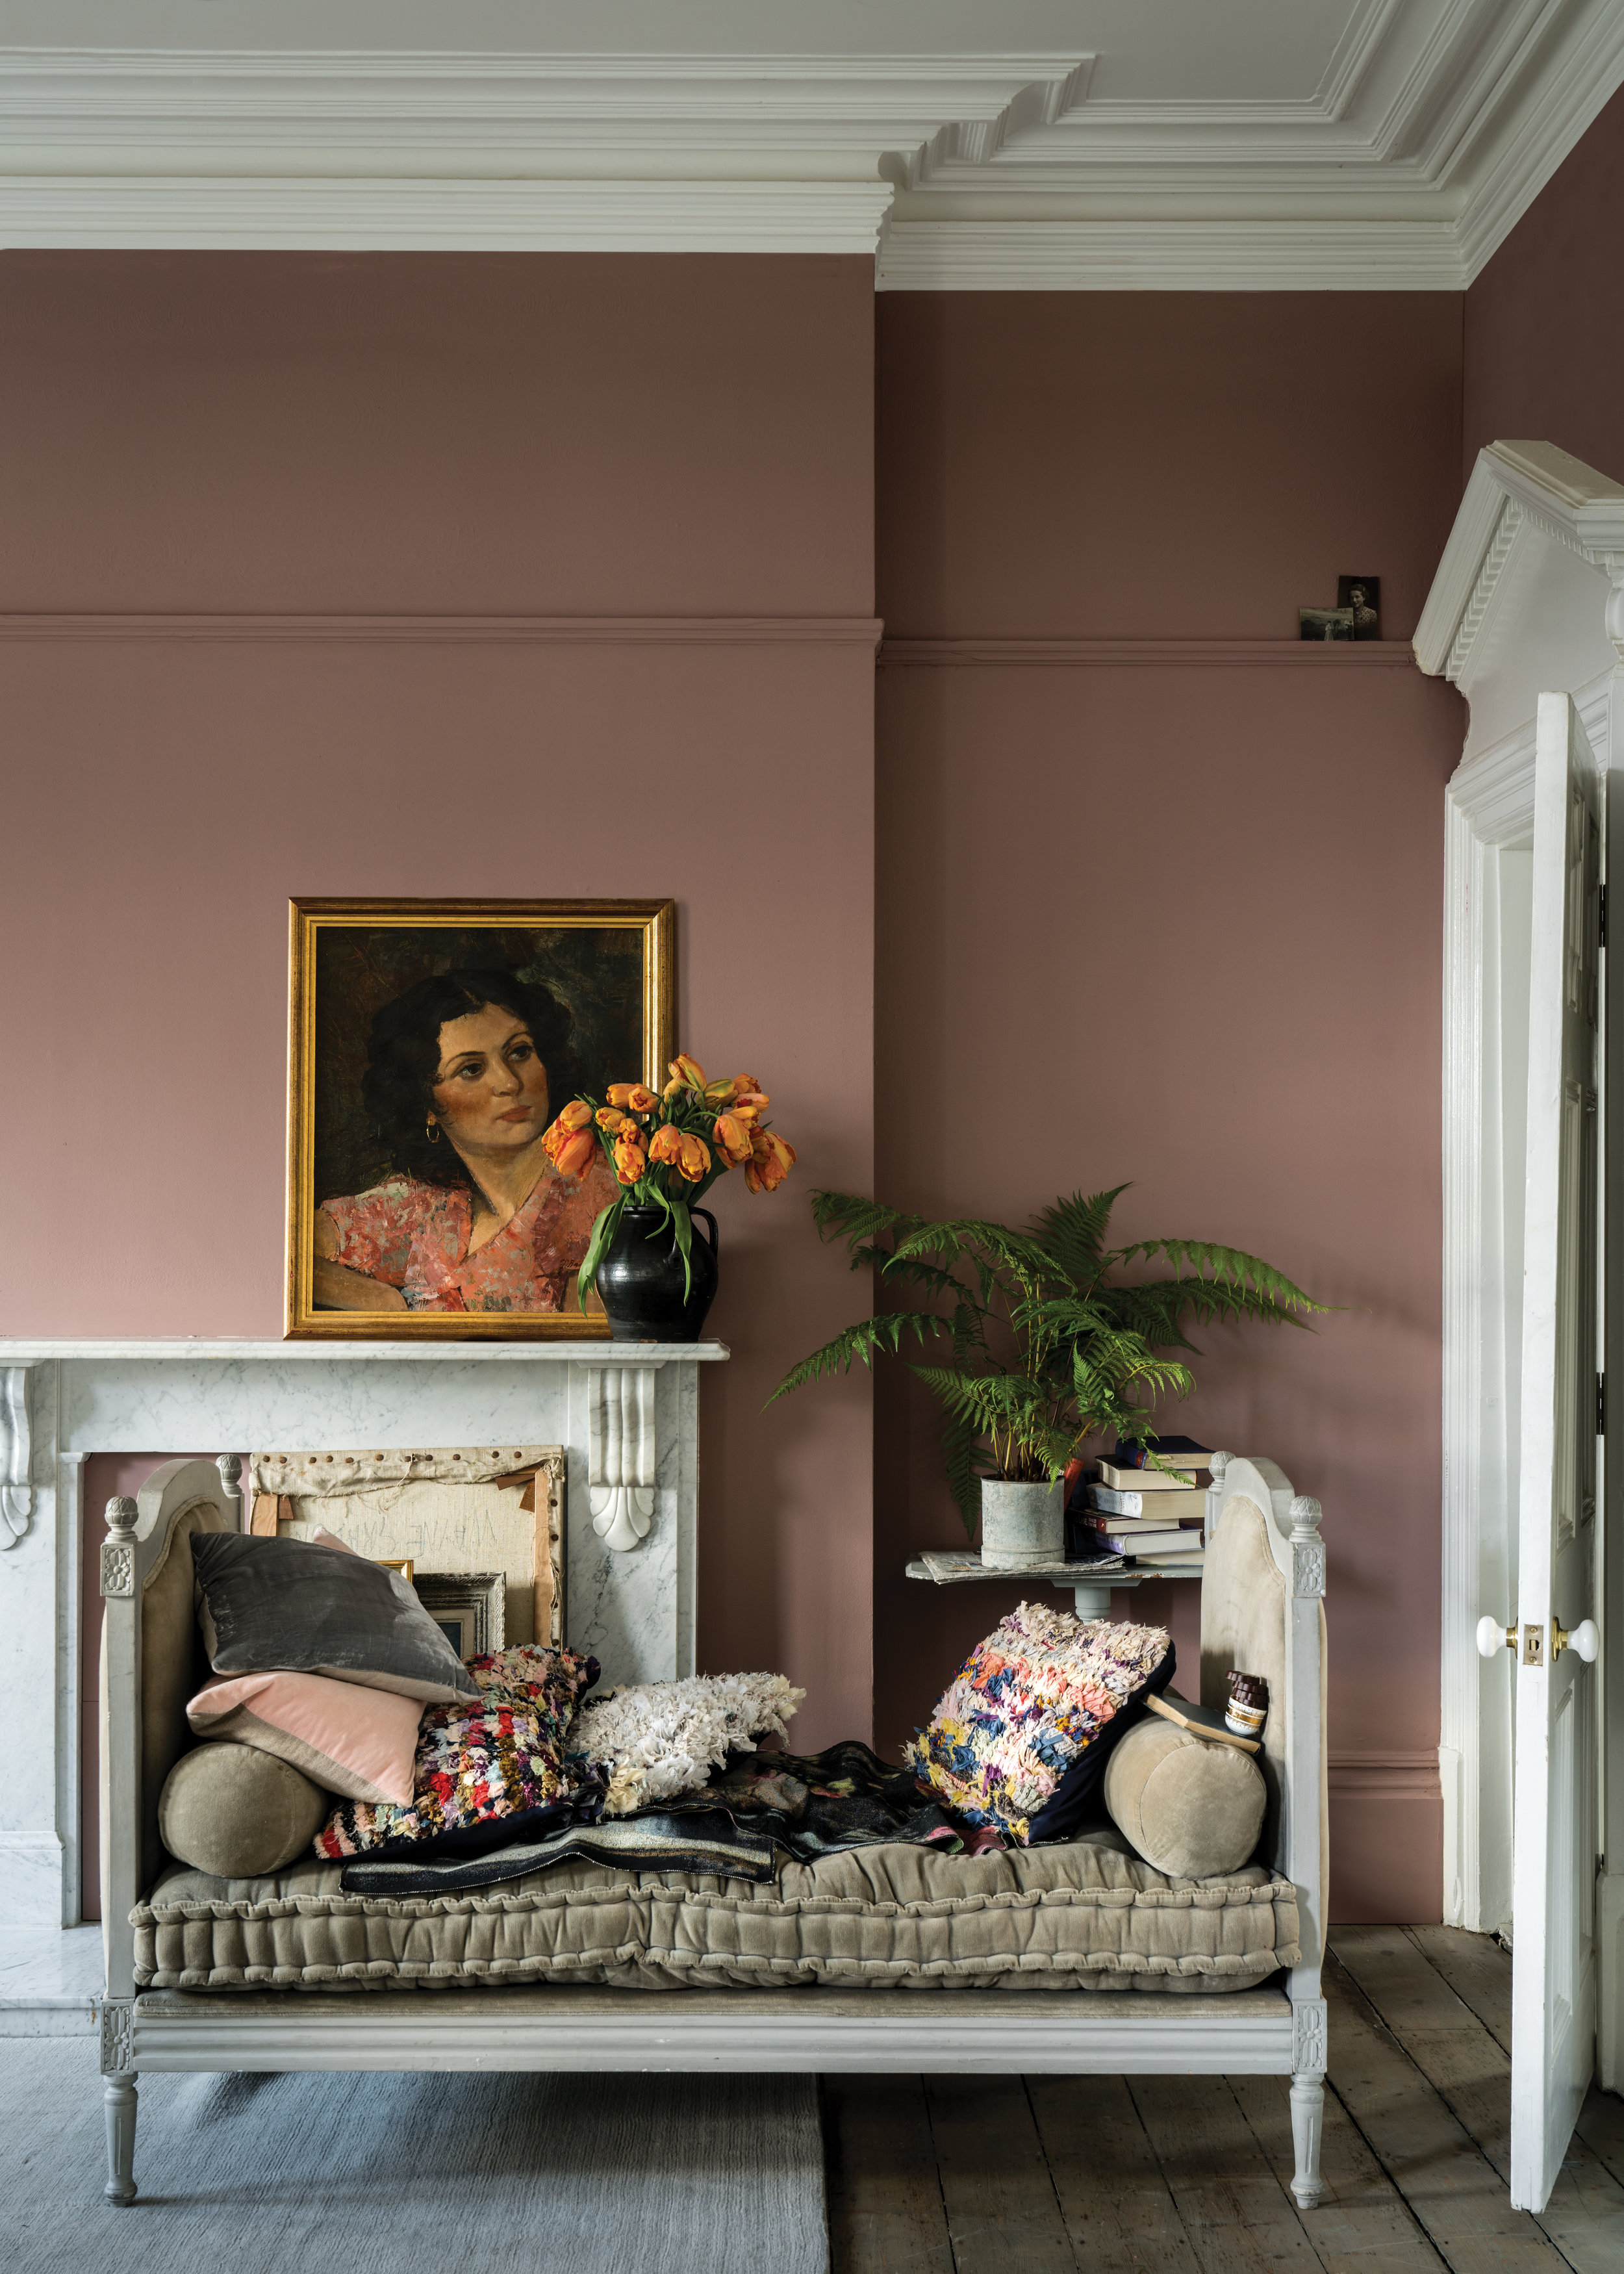 Farrow & Ball - from £45.00 for 2.5L